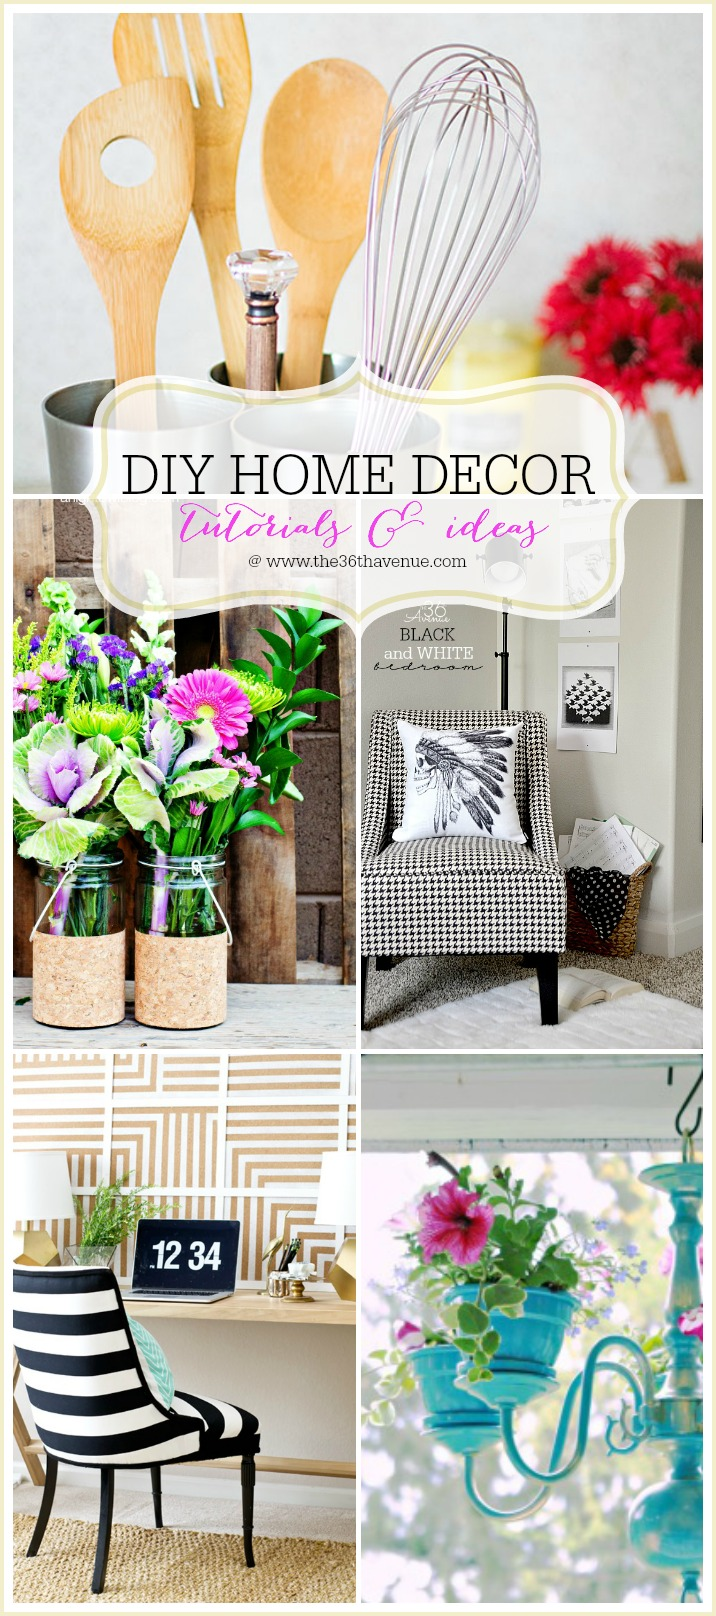 The 36th avenue home decor diy projects the 36th avenue for Ideas to decorate your house